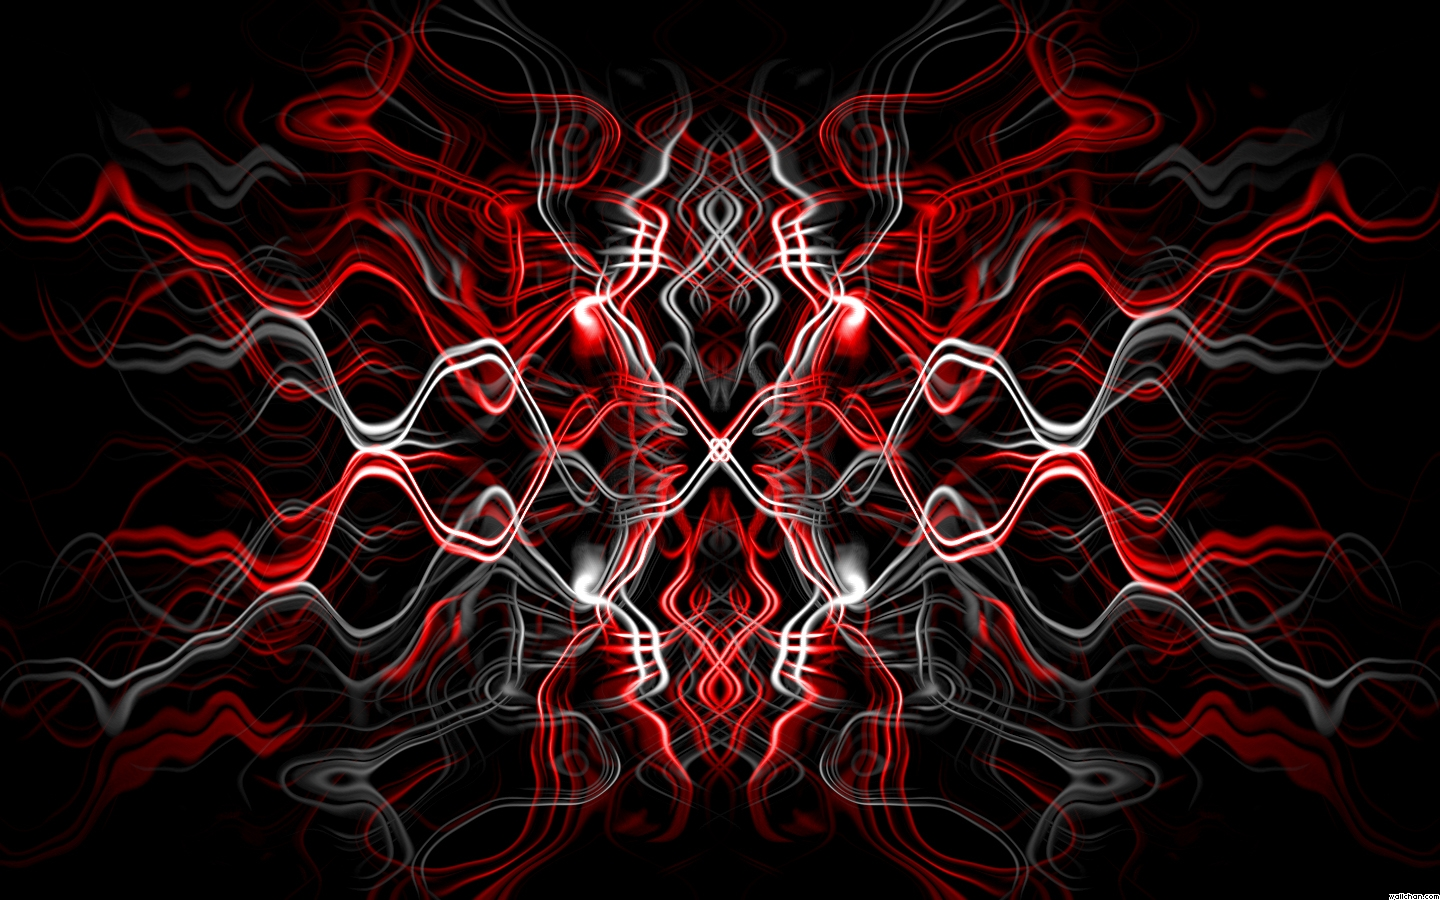 And Red Abstract Tattoo Next Post Red And Black Abstract Wall Art 1440x900